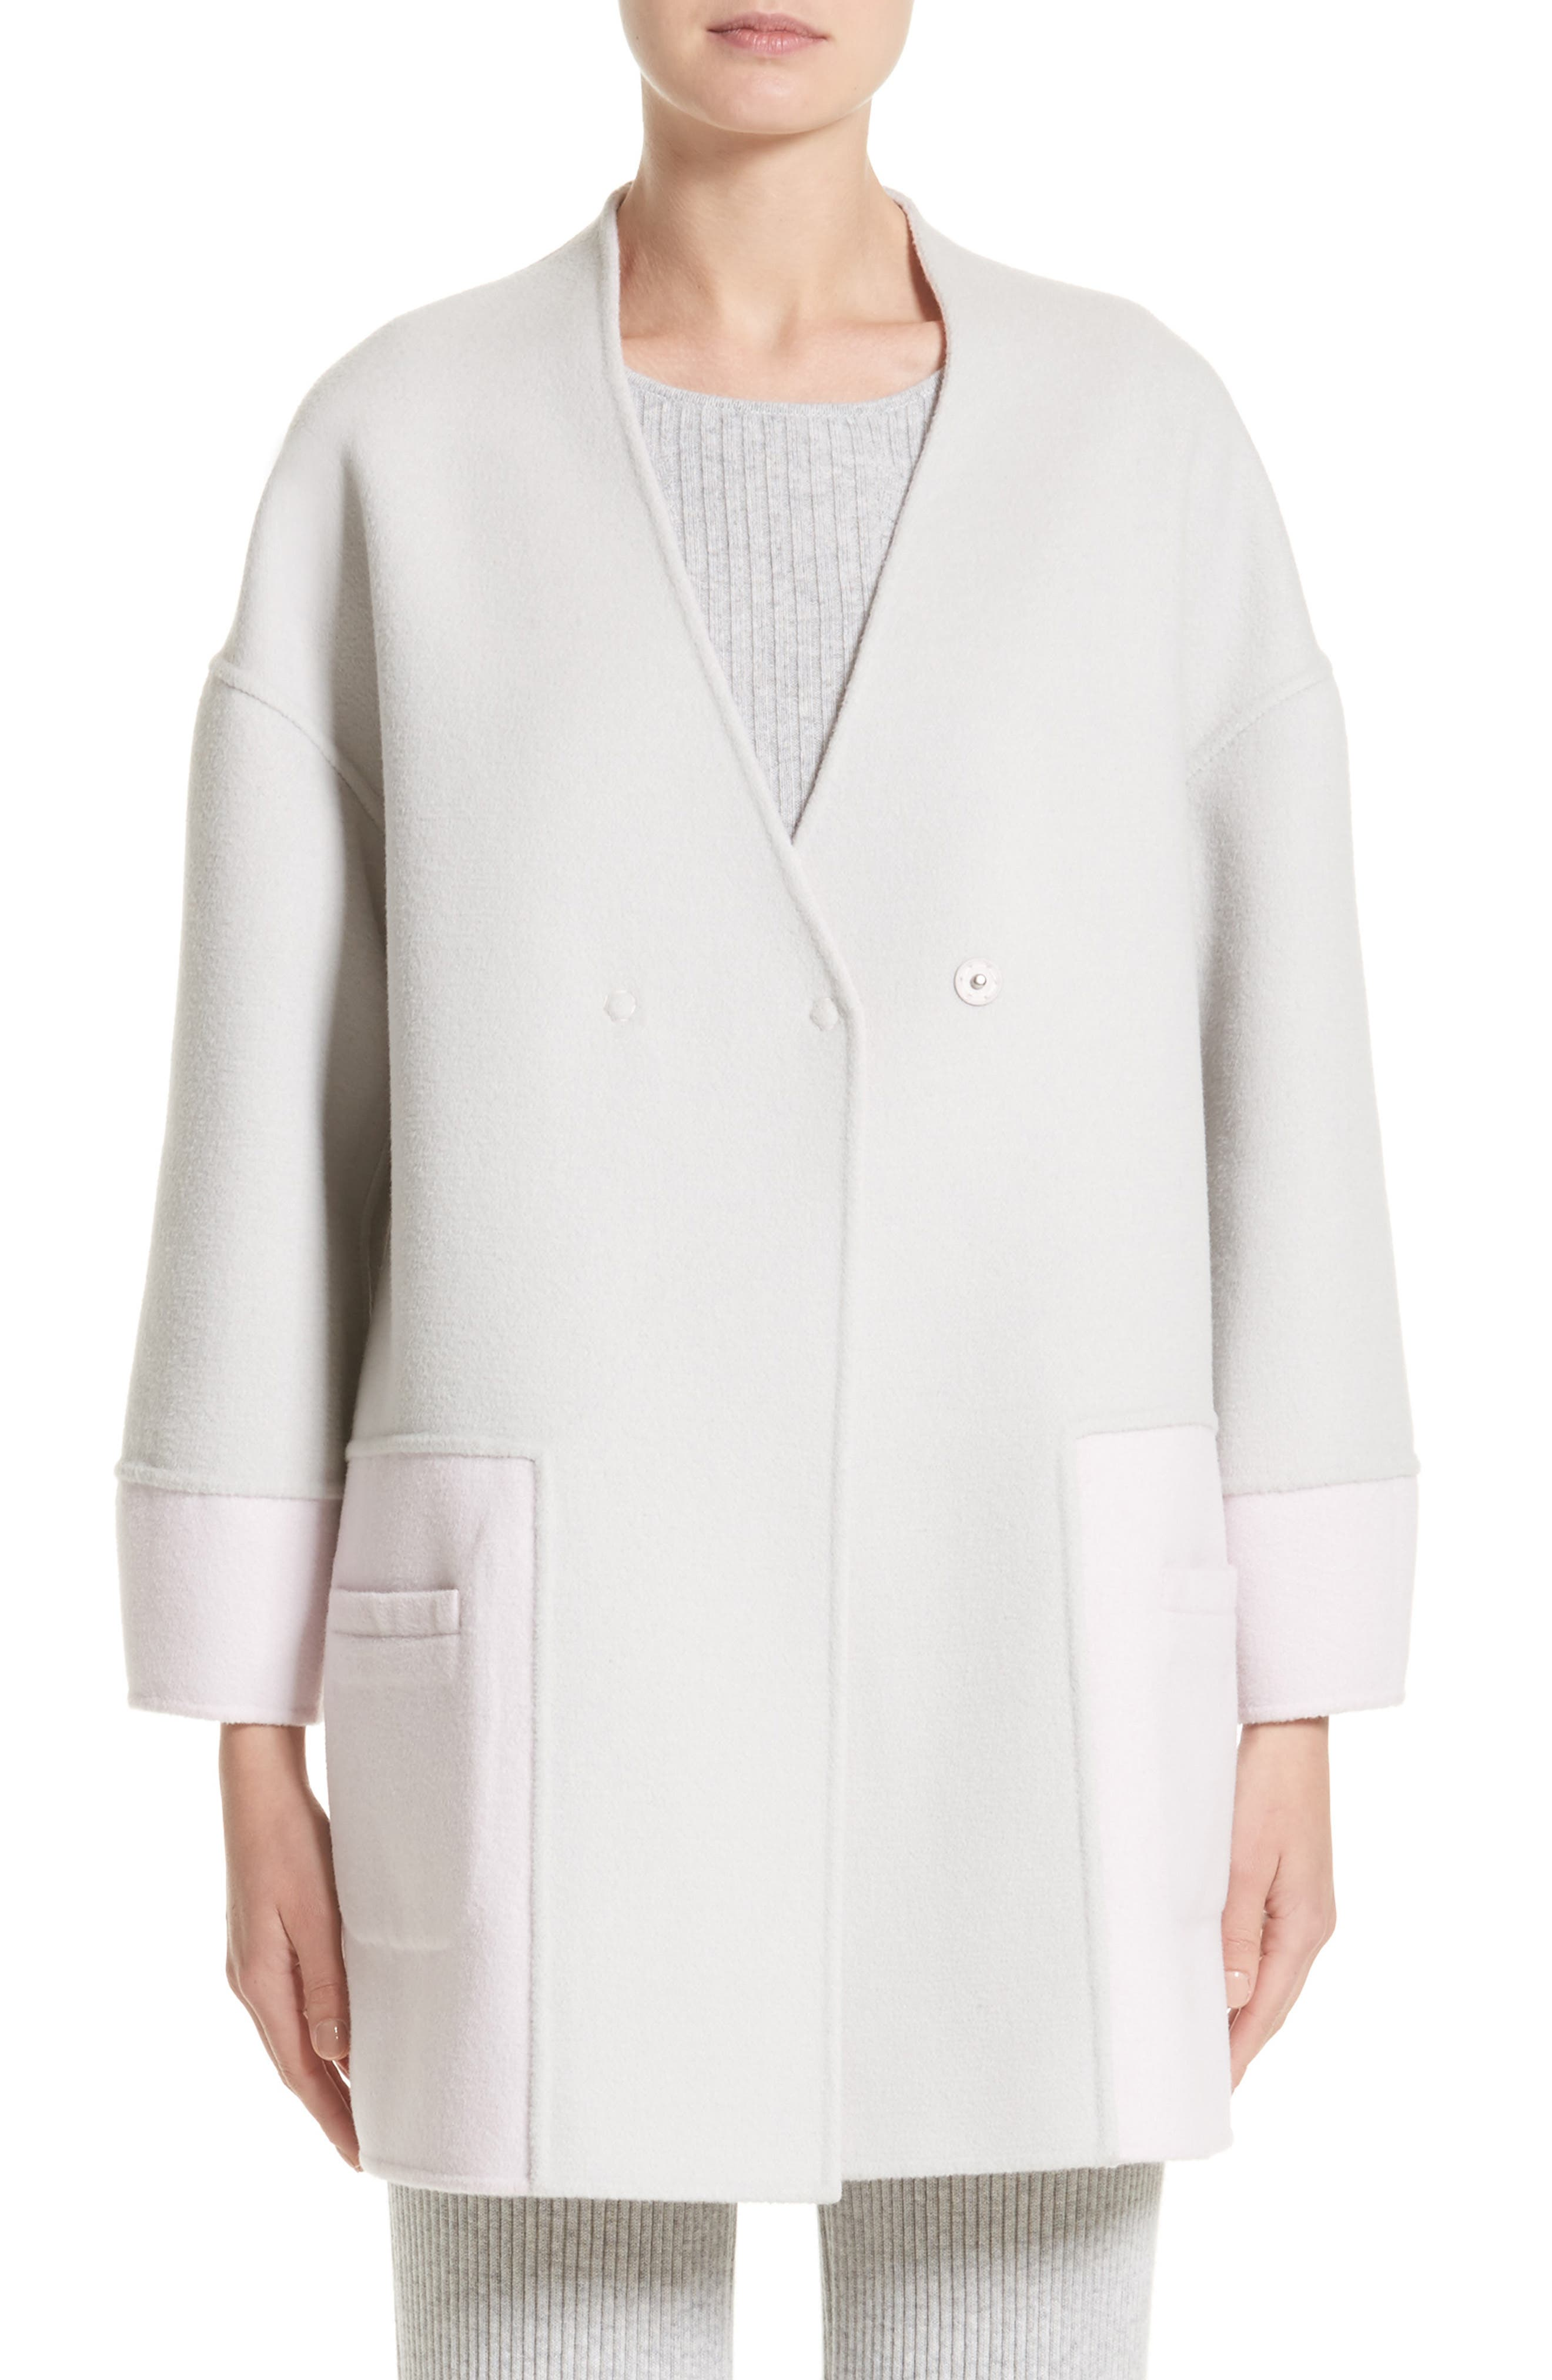 Alternate Image 1 Selected - St. John Collection Reversible Wool Blend Cocoon Coat